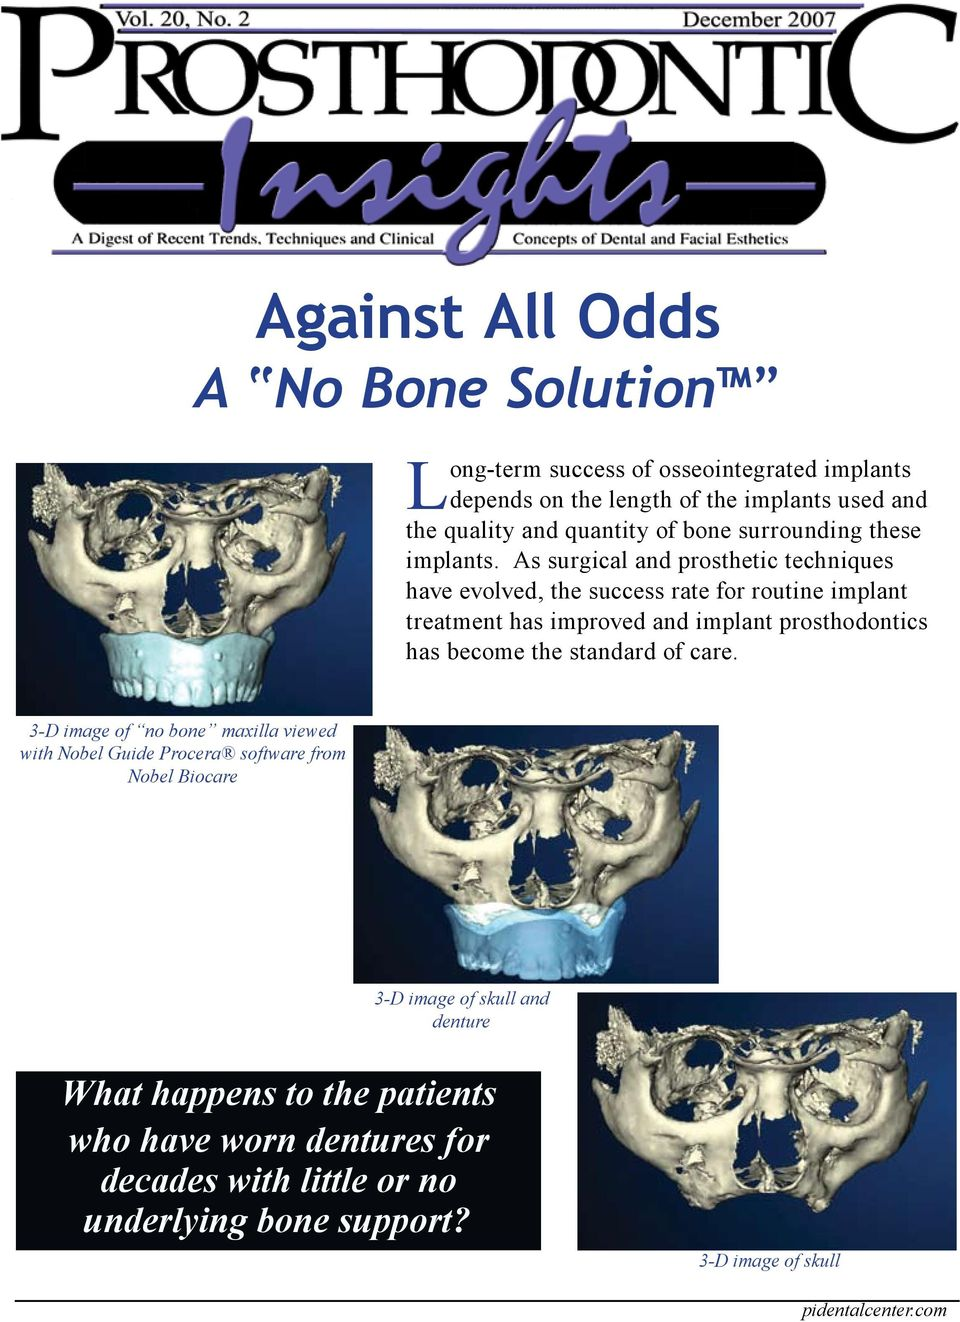 As surgical and prosthetic techniques have evolved, the success rate for routine implant treatment has improved and implant prosthodontics has become